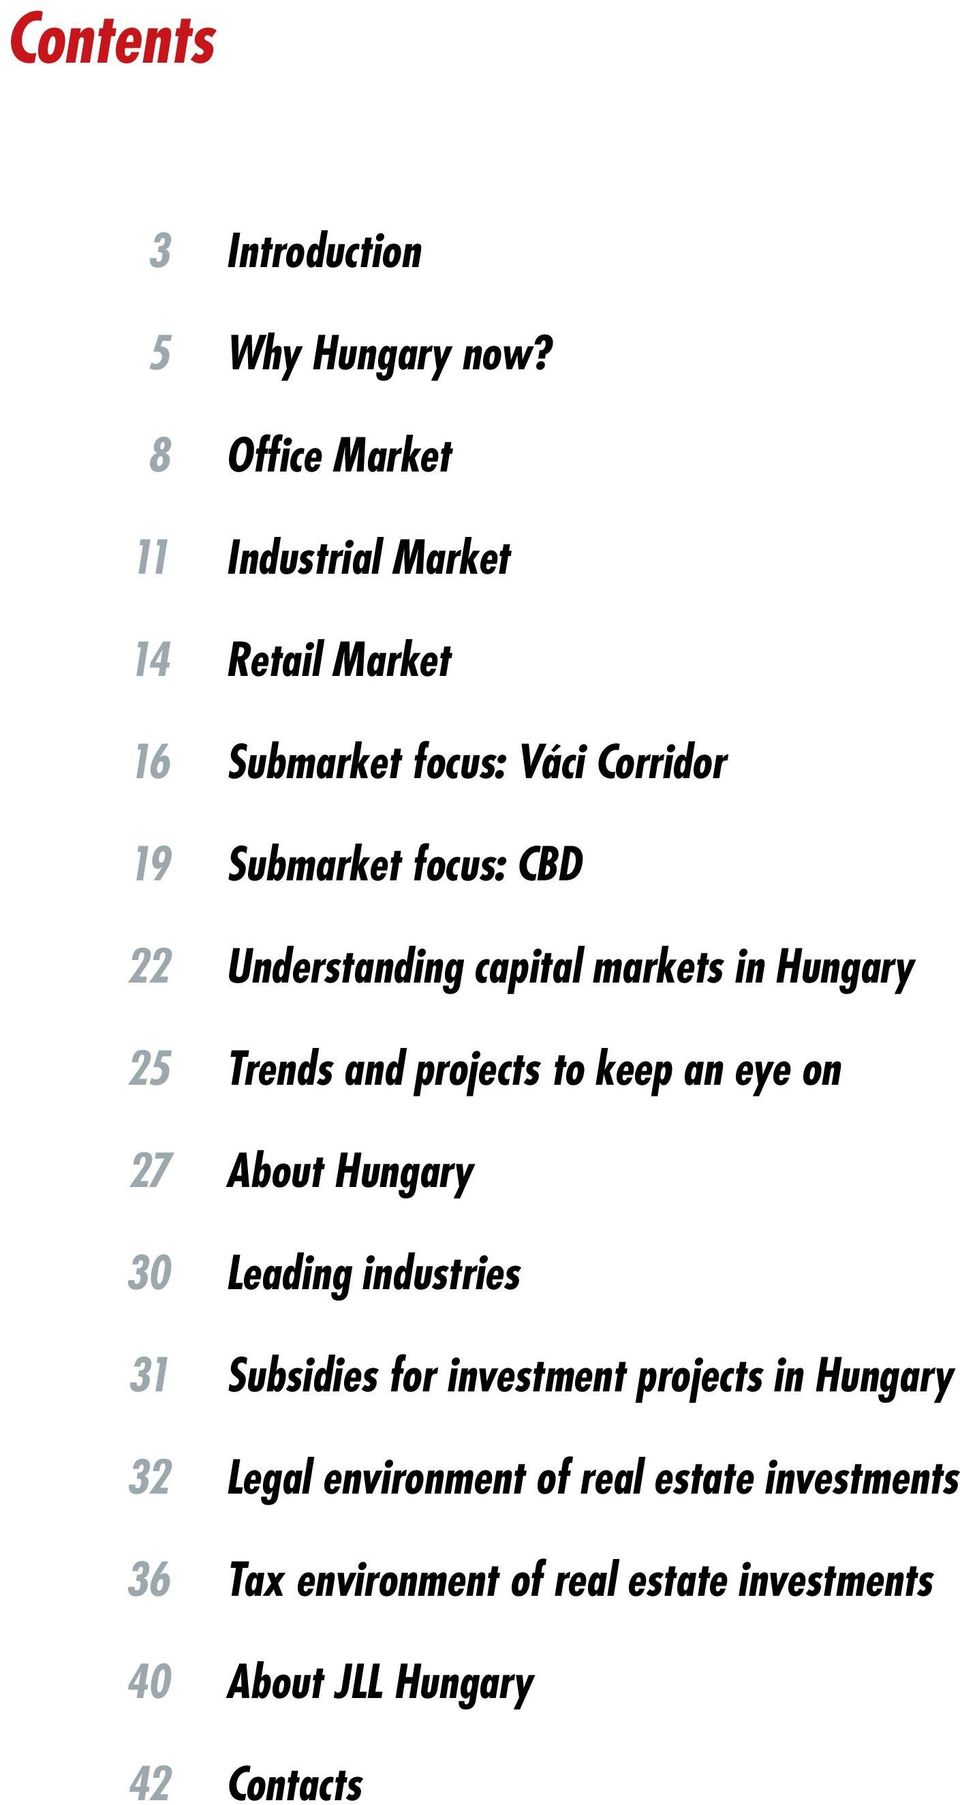 22 Understanding capital markets in Hungary 25 Trends and projects to keep an eye on 27 About Hungary 30 Leading